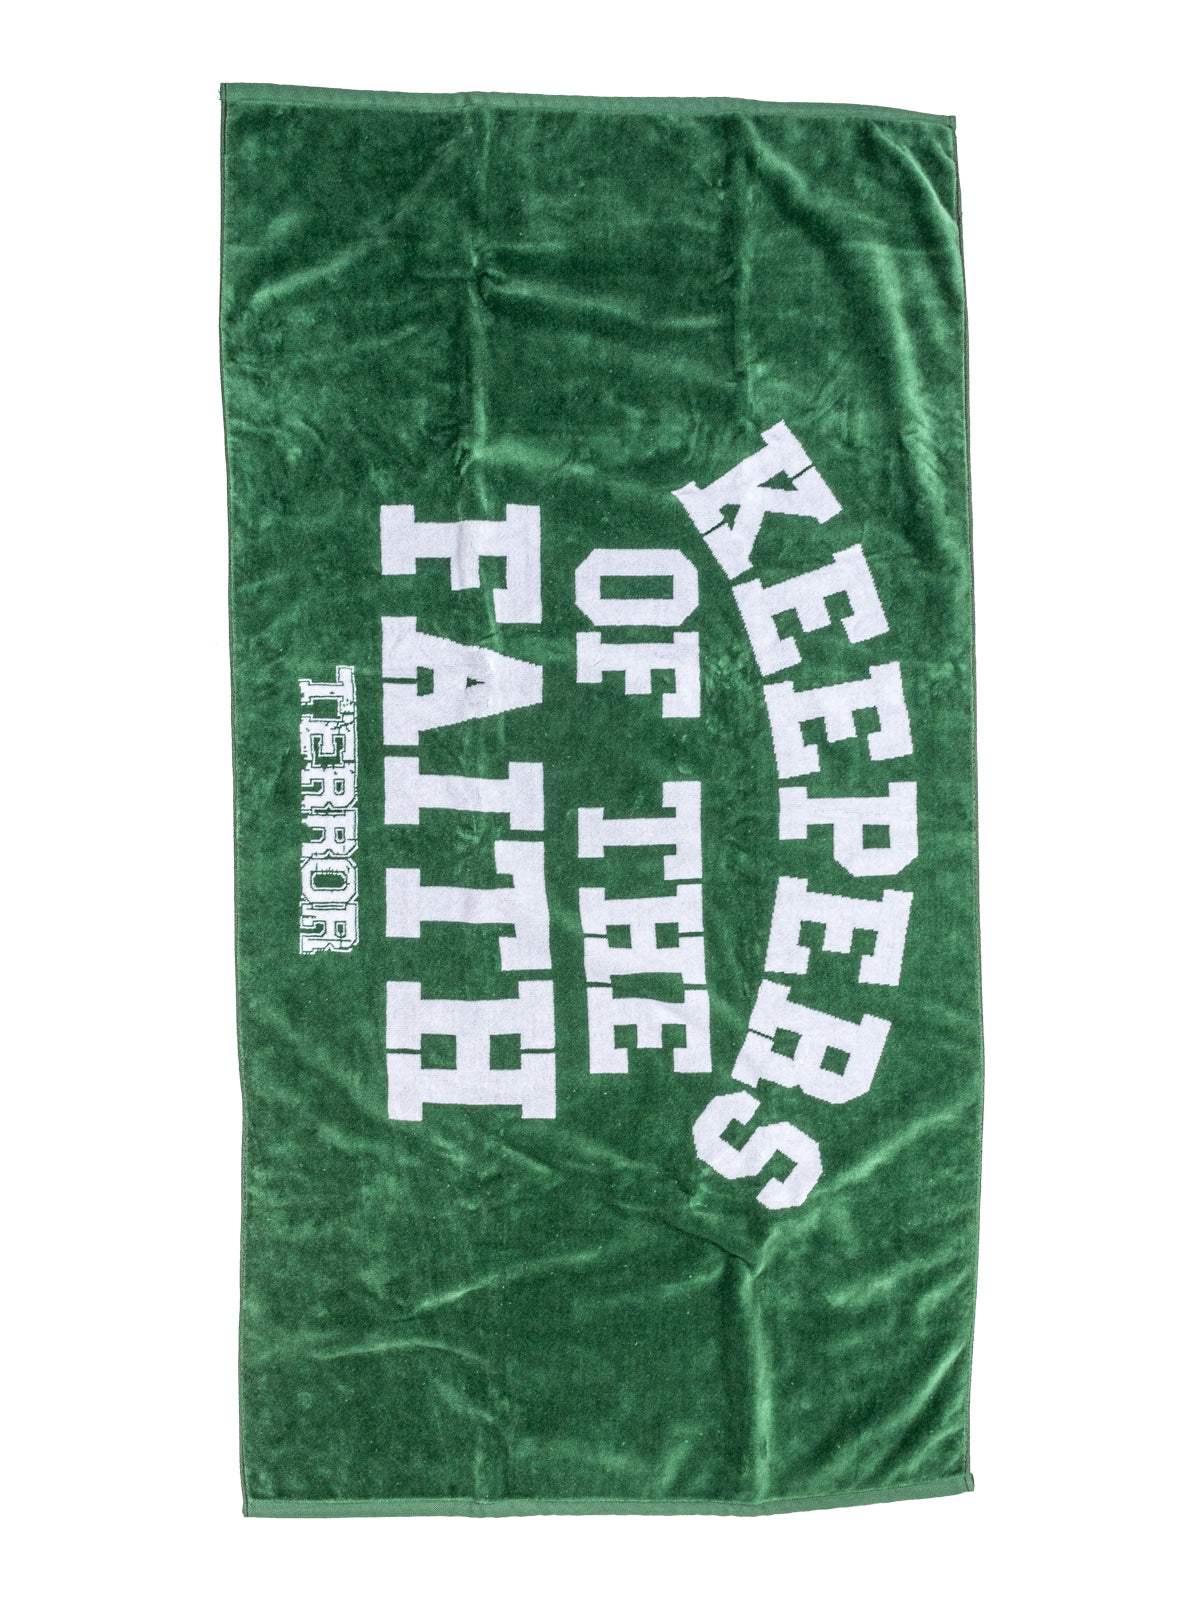 Terror - KOTF Beach Towel (Forest Green) - Merch Limited